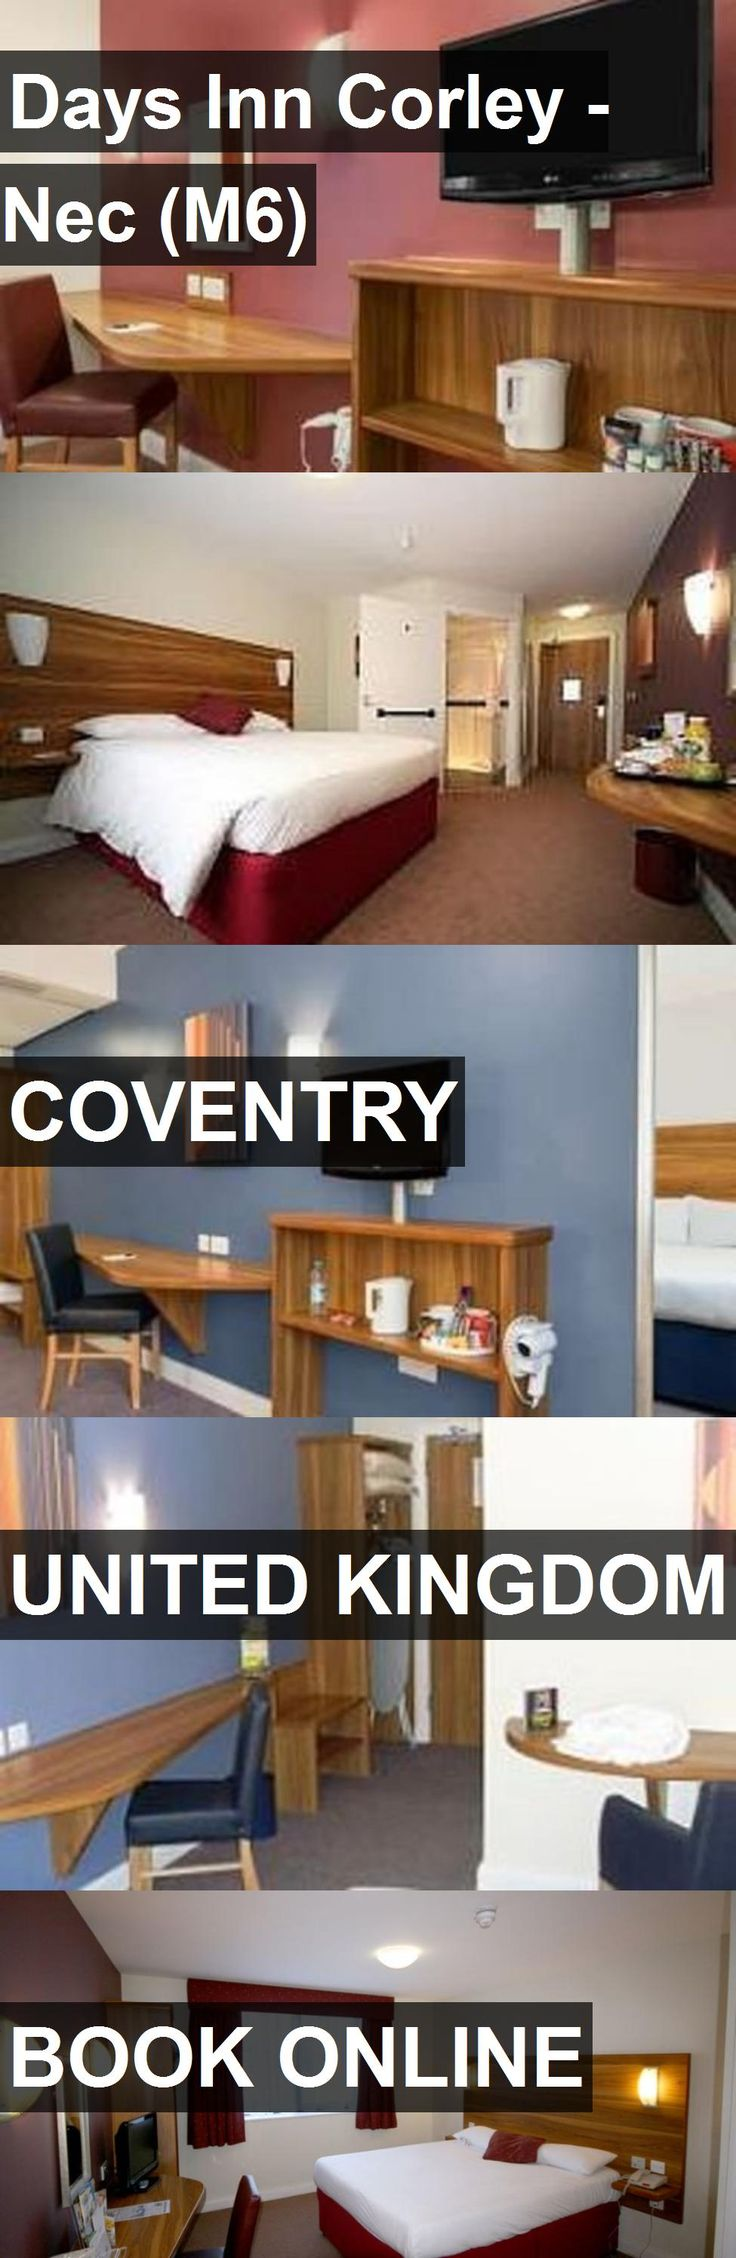 Hotel Days Inn Corley - Nec (M6) in Coventry, United Kingdom. For more information, photos, reviews and best prices please follow the link. #UnitedKingdom #Coventry #travel #vacation #hotel